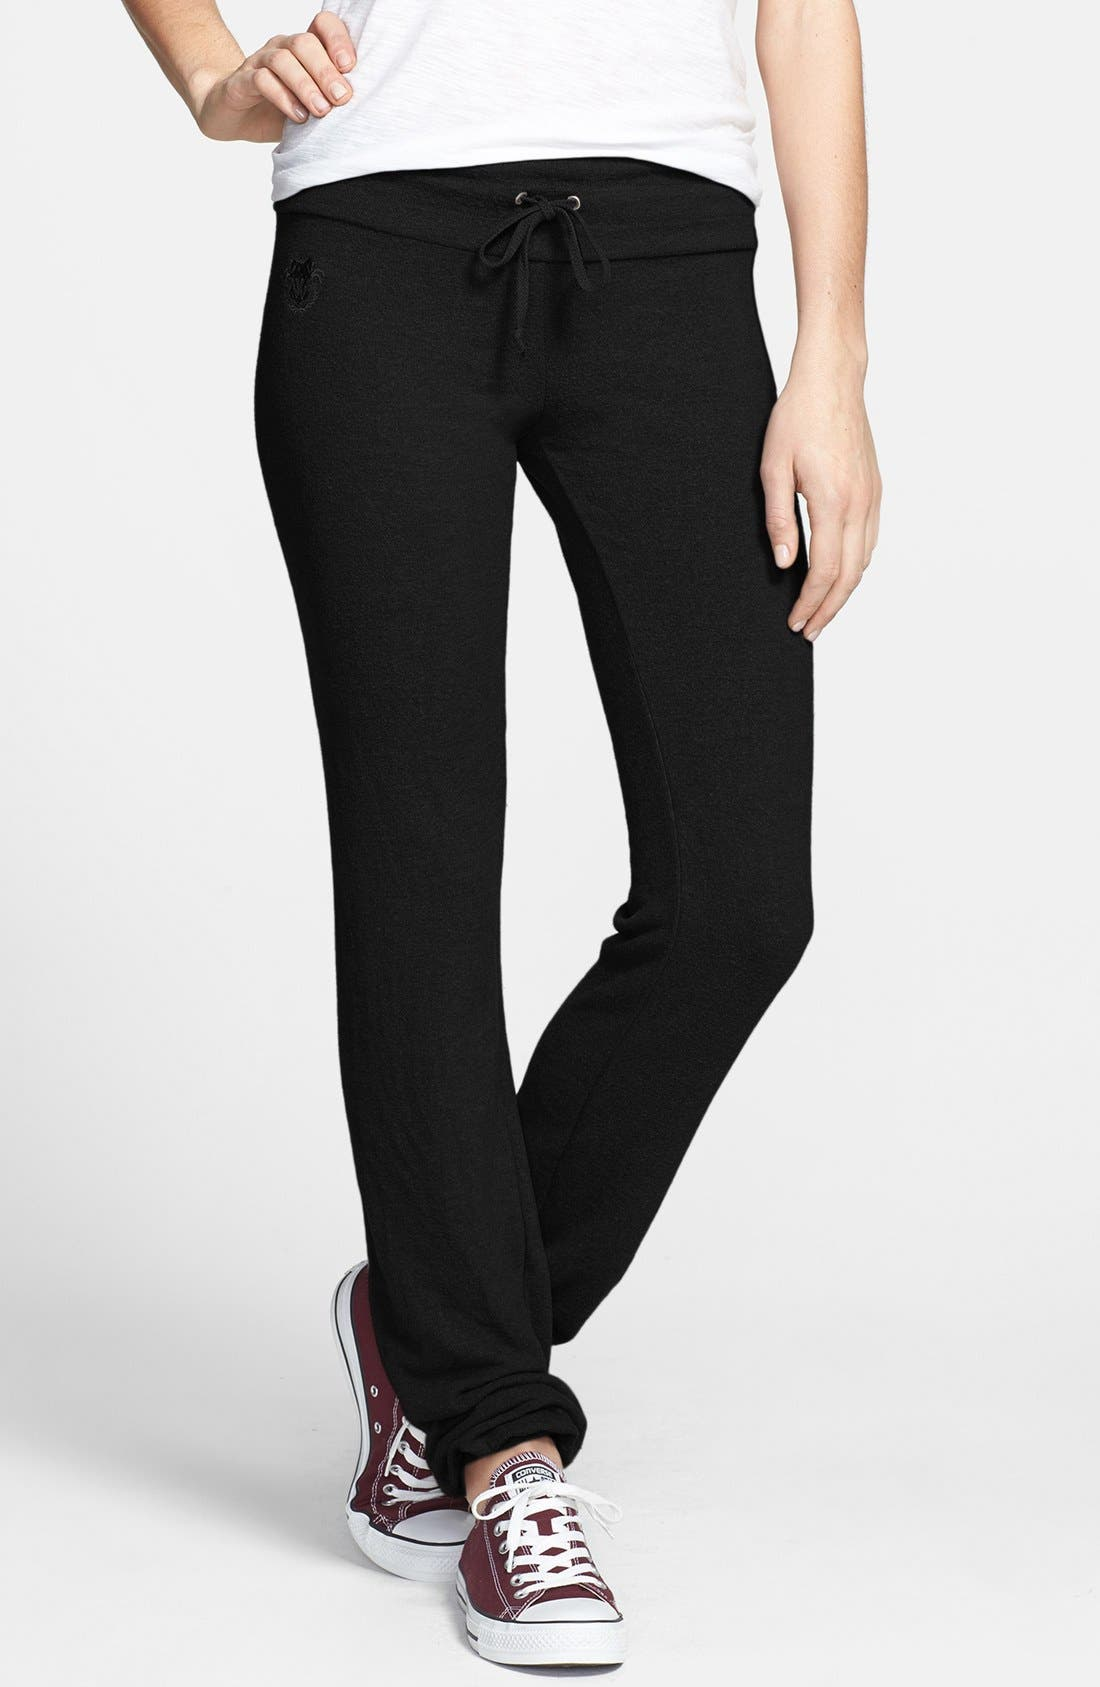 Alternate Image 1 Selected - Wildfox 'Basics - Malibu' Skinny Jogging Pants